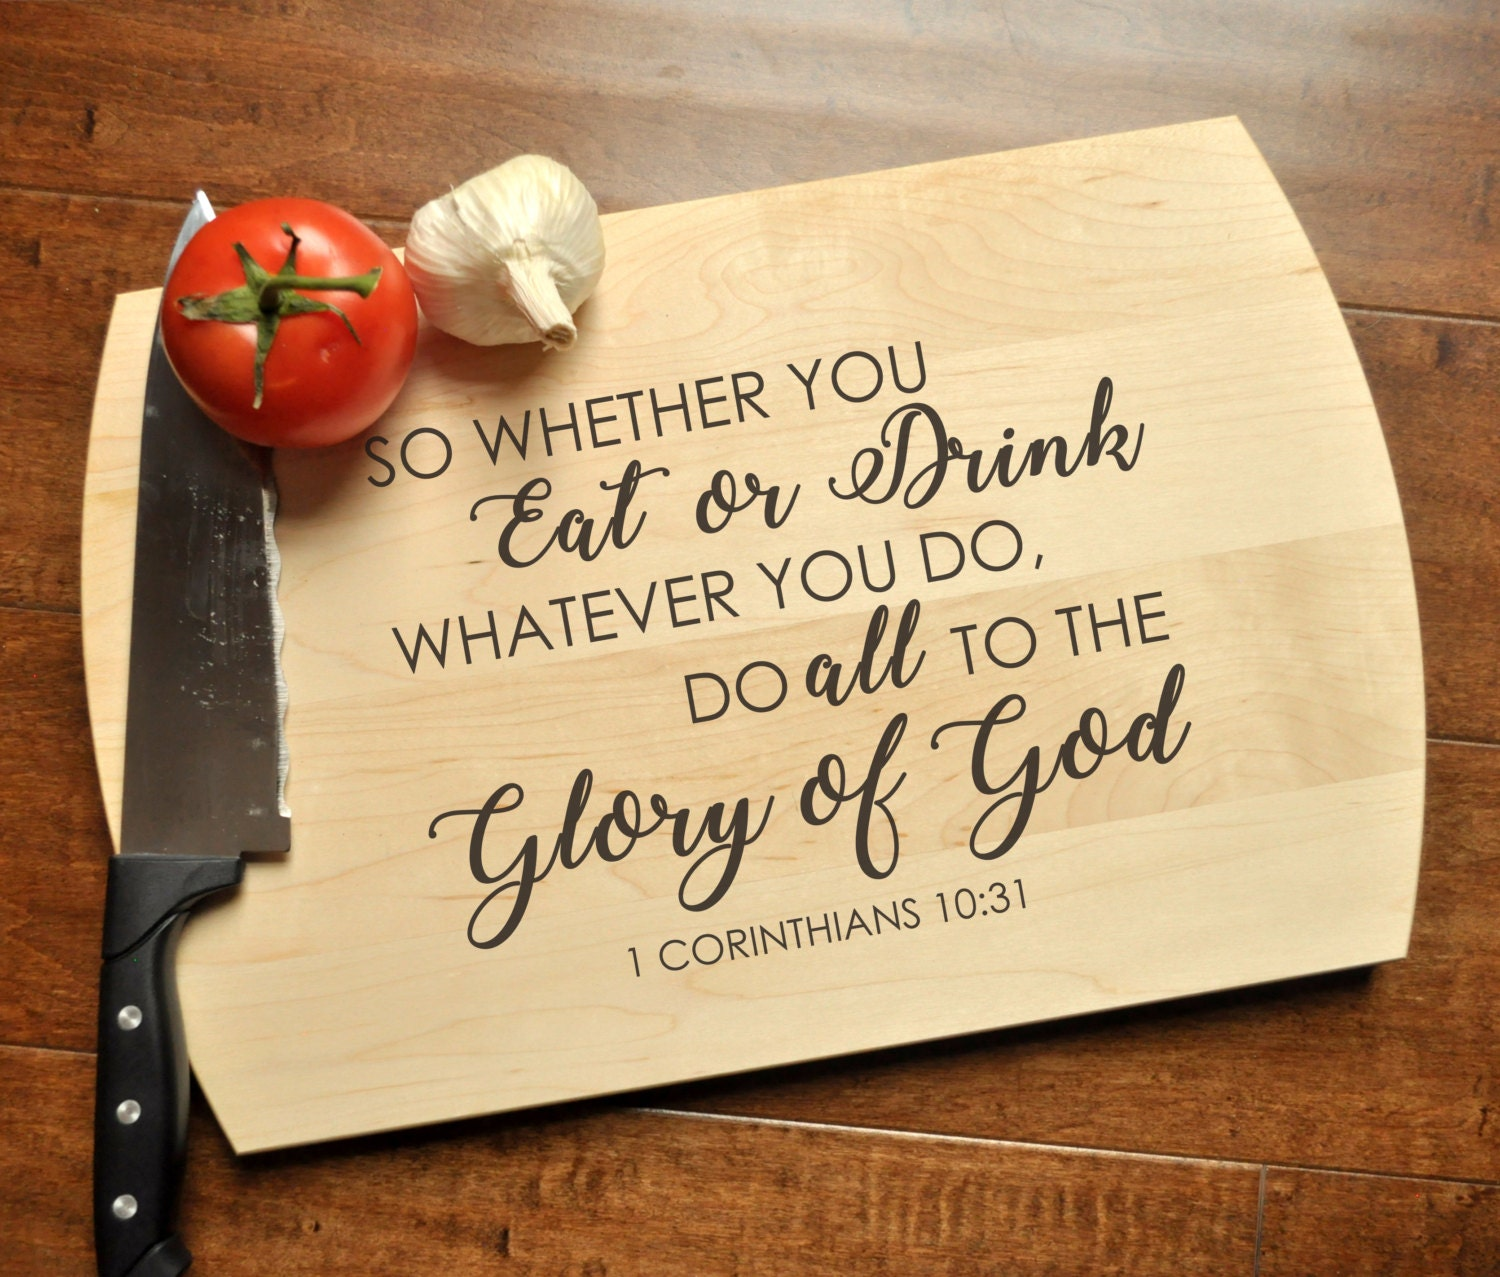 Glory of god cutting board christian cutting board personalized glory of god cutting board christian cutting board personalized wedding gift housewarming bible verse gift 1 corinthians 1031 negle Images